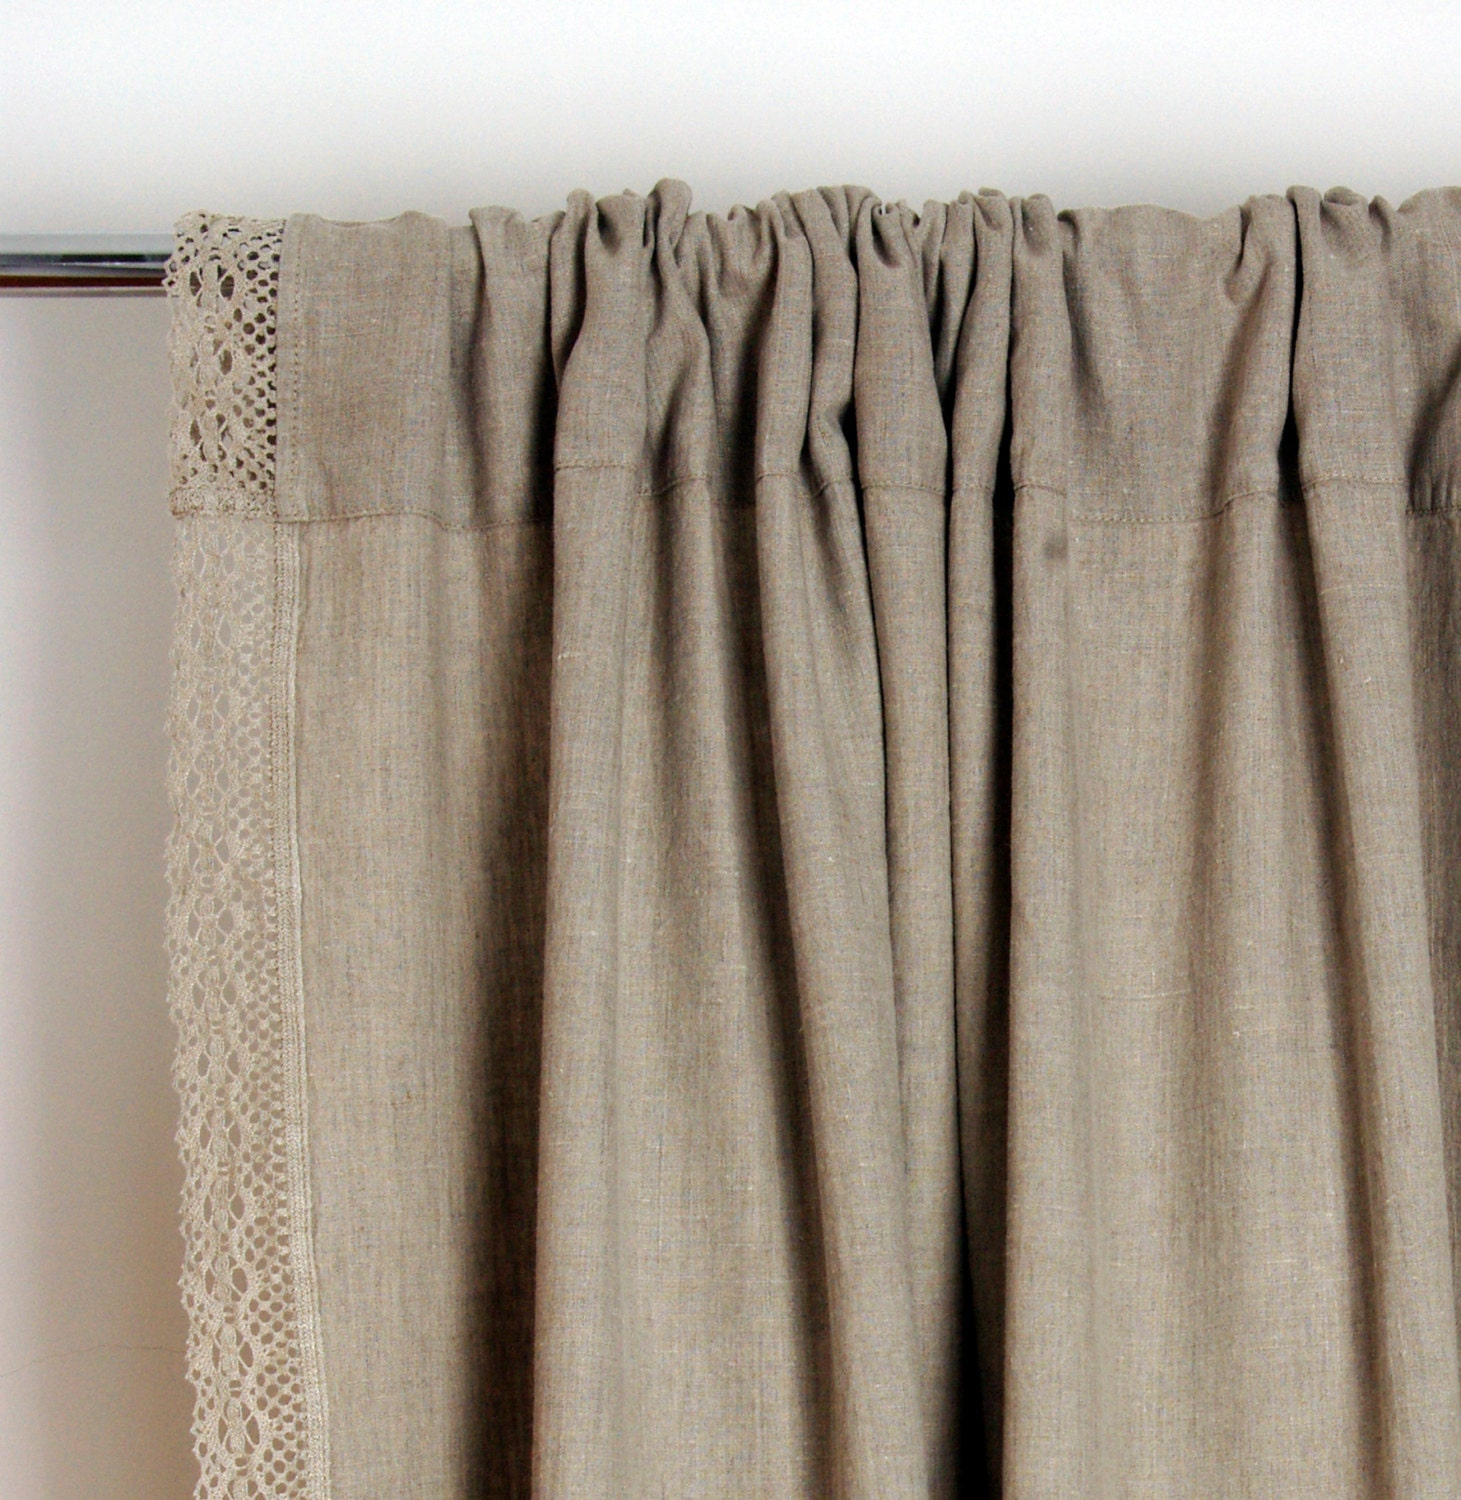 White linen panel/fiber flax. Window valance. Natural Linen Curtain Valance. Kitchen cafe curtains.